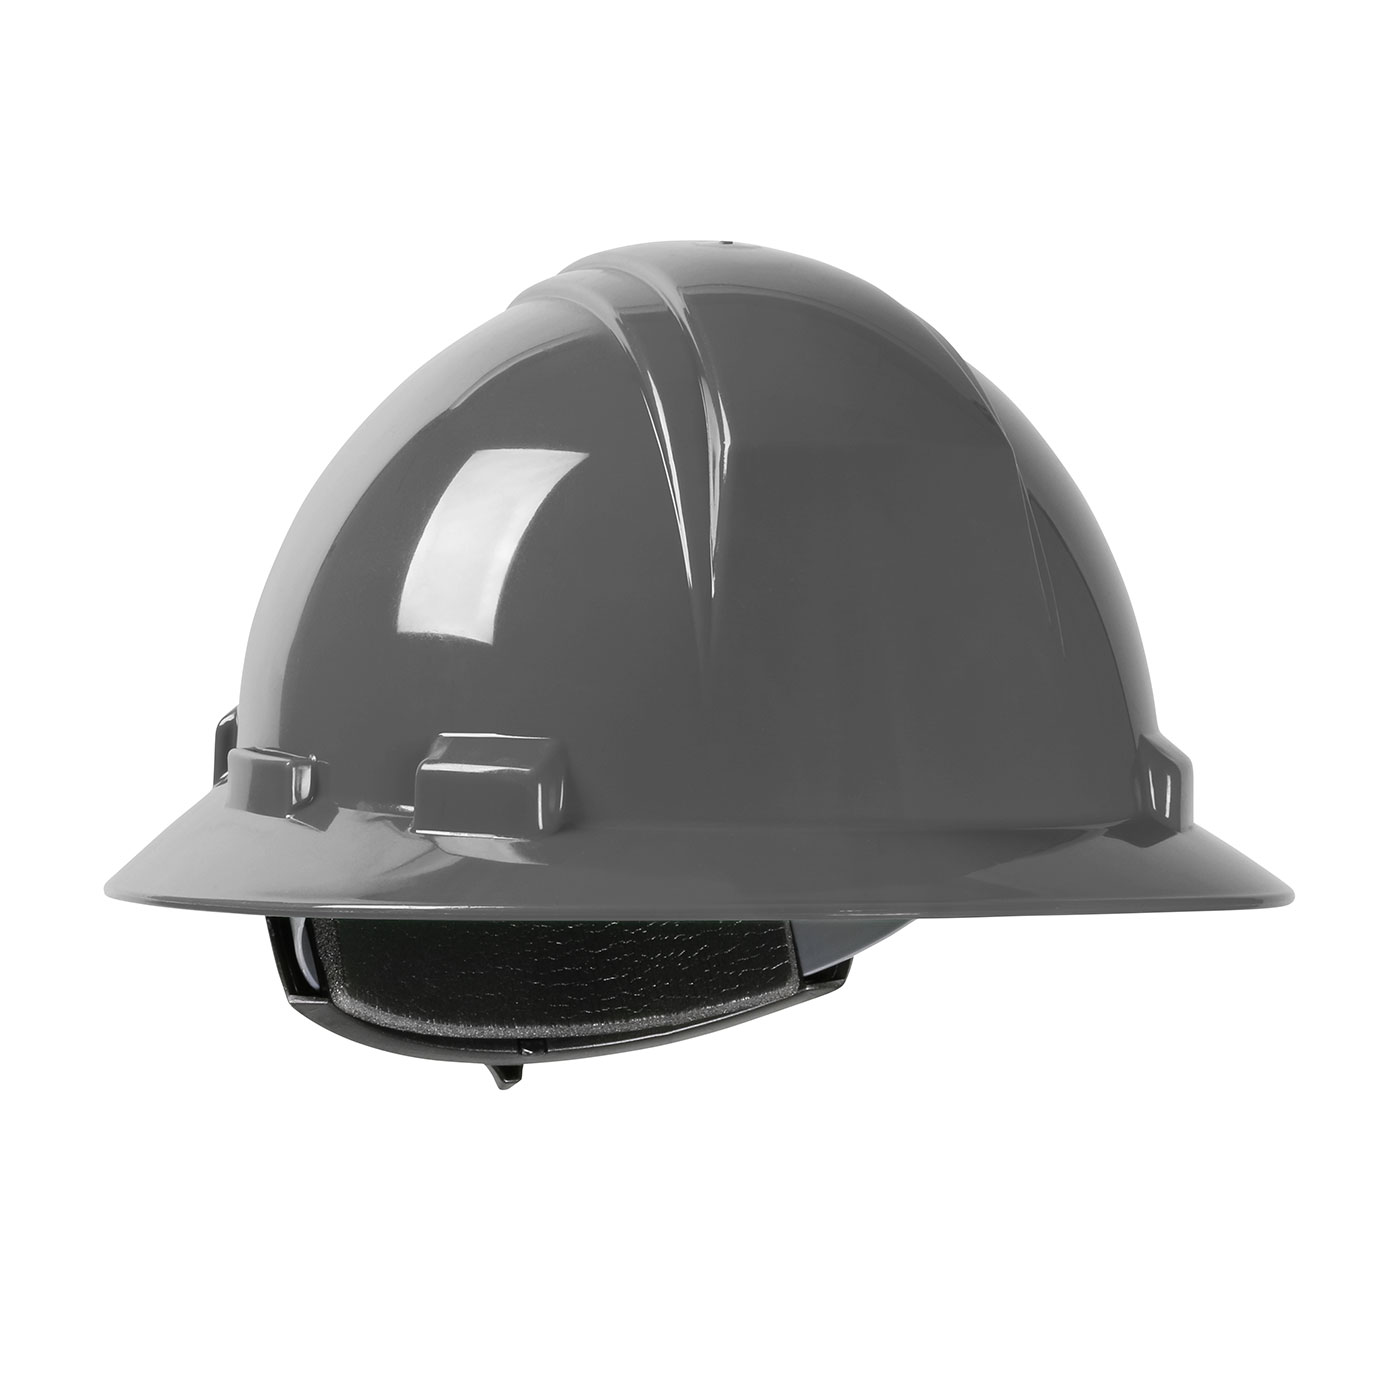 280-HP261R PIP® Dynamic Kilimanjaro™ Full Brim Hard Hat with HDPE Shell, 4-Point Textile Suspension and Wheel Ratchet Adjustment - Dark Gray